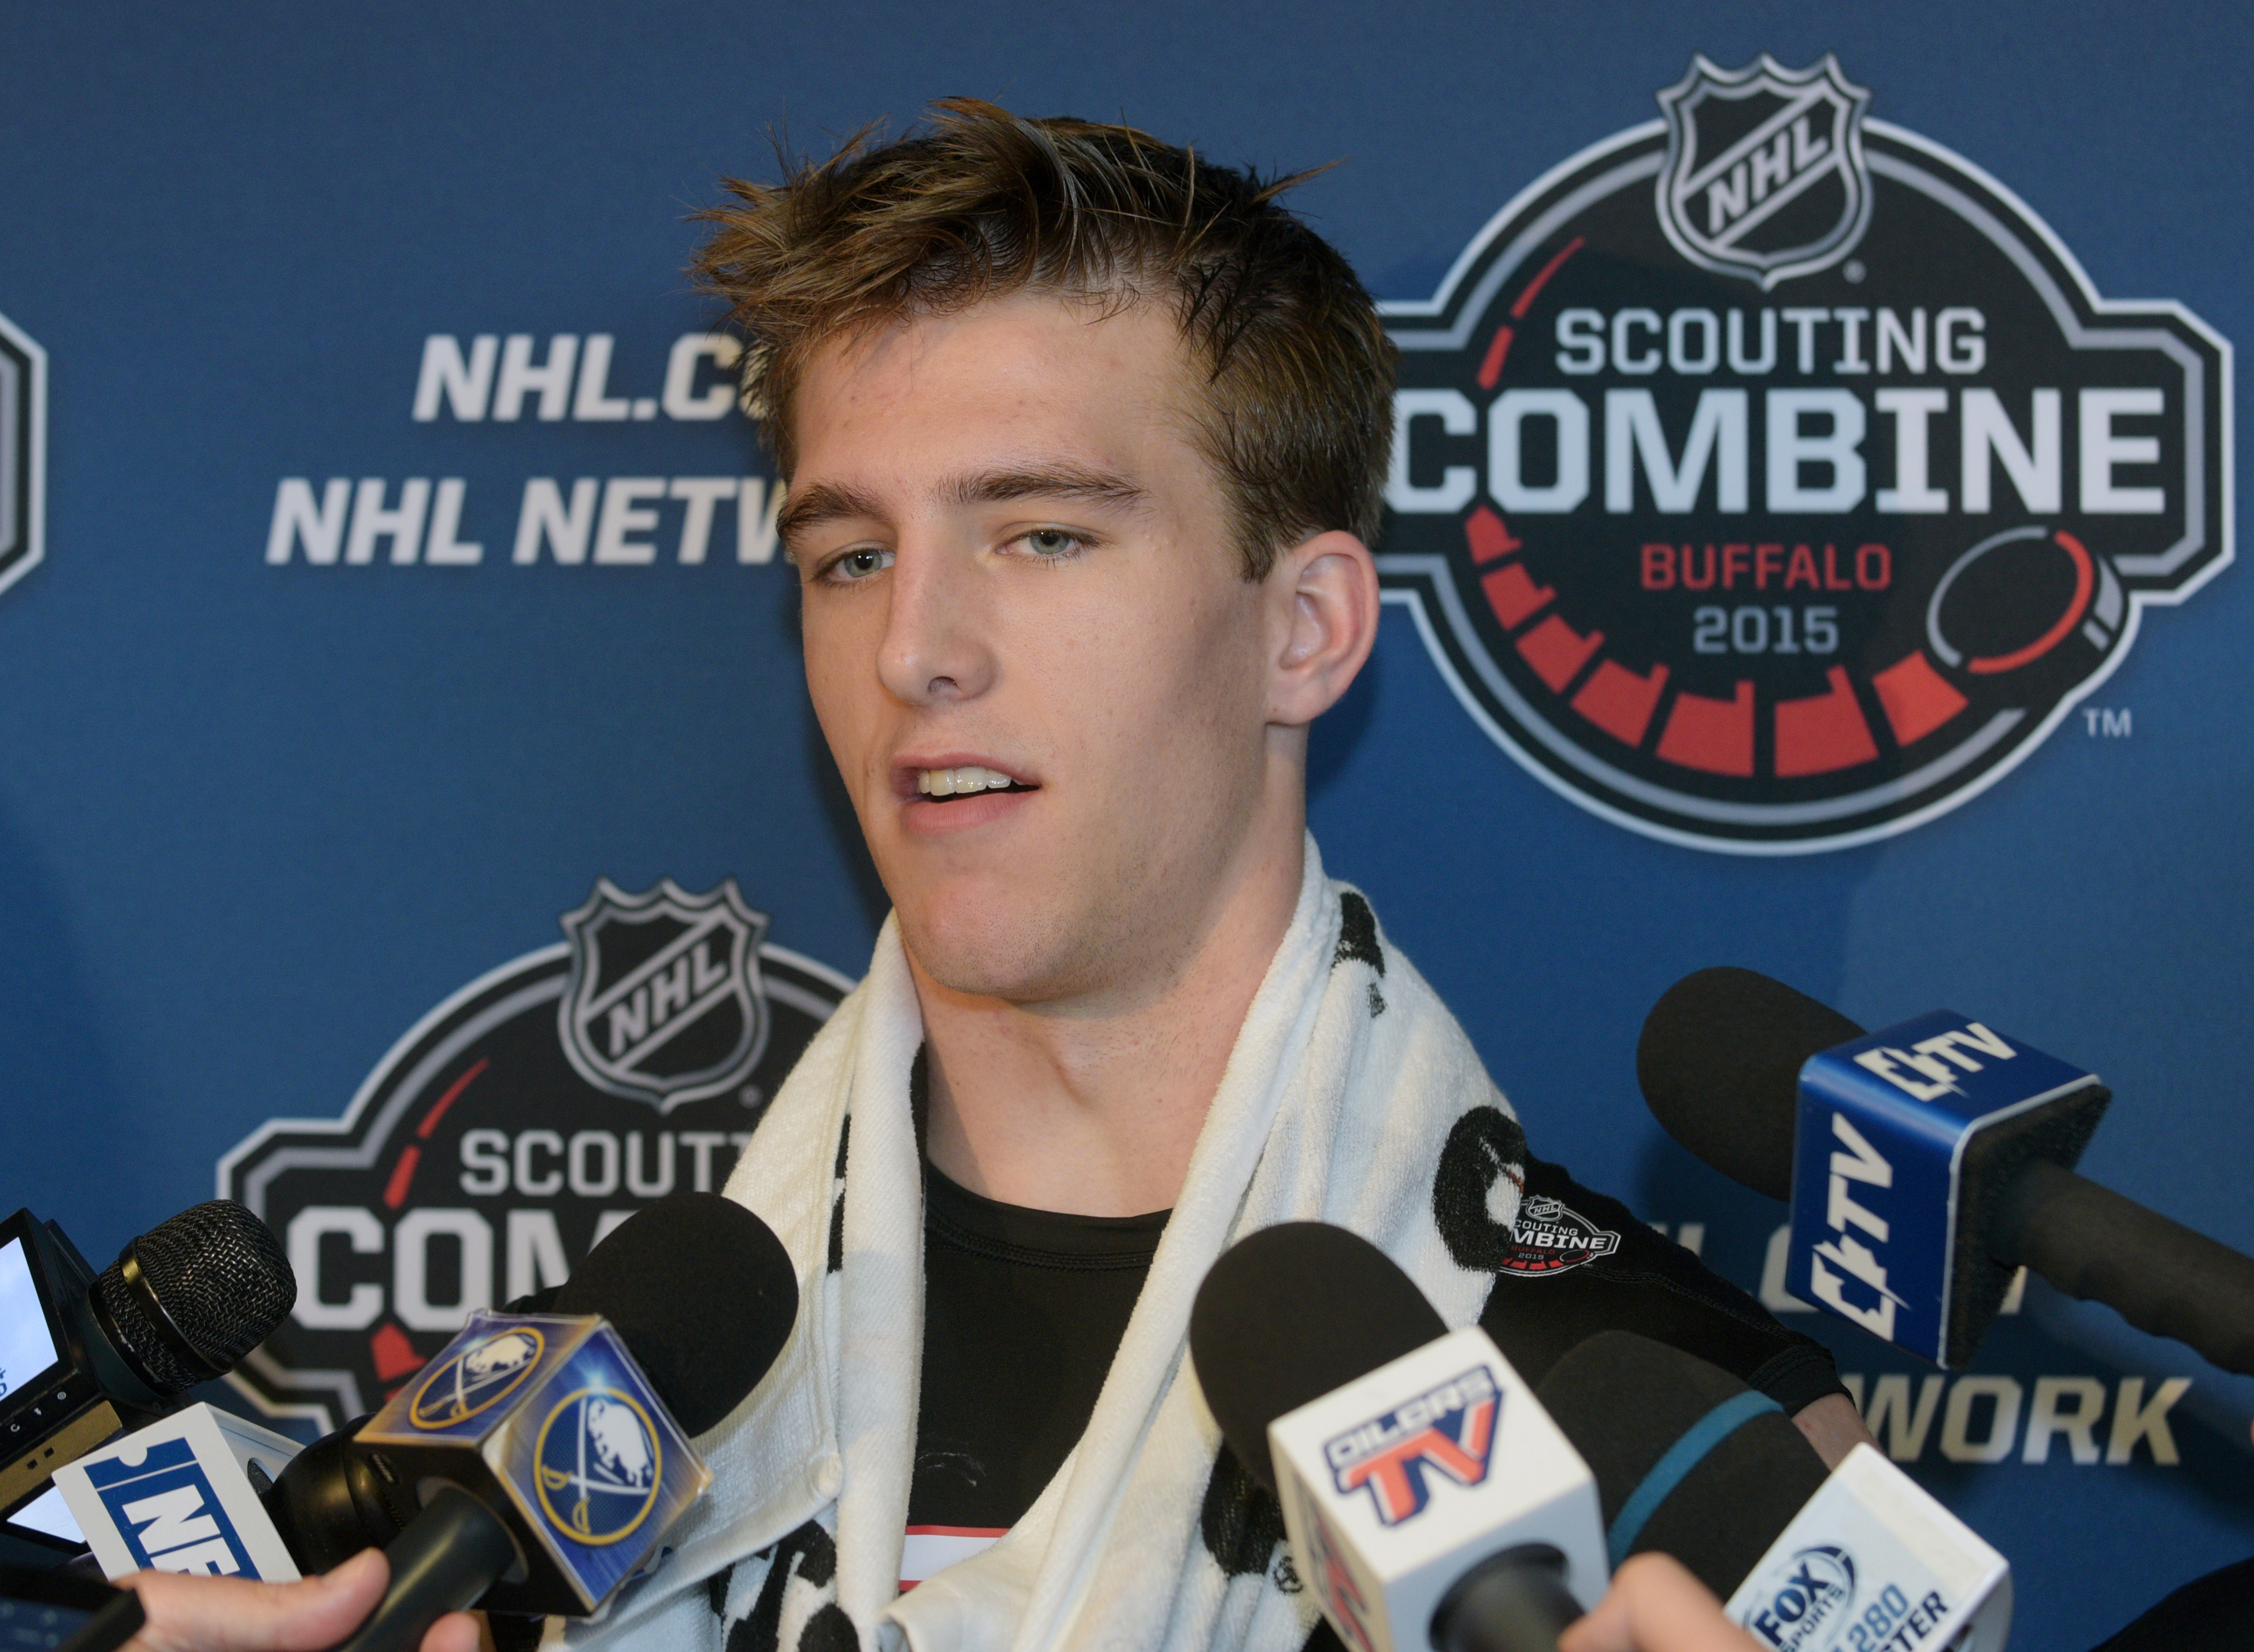 Noah Hanifin talks with reporters after he completed his hockey testing at the NHL Combine, Saturday, June 6, 2015, in Buffalo, N.Y. (AP Photo/Gary Wiepert)